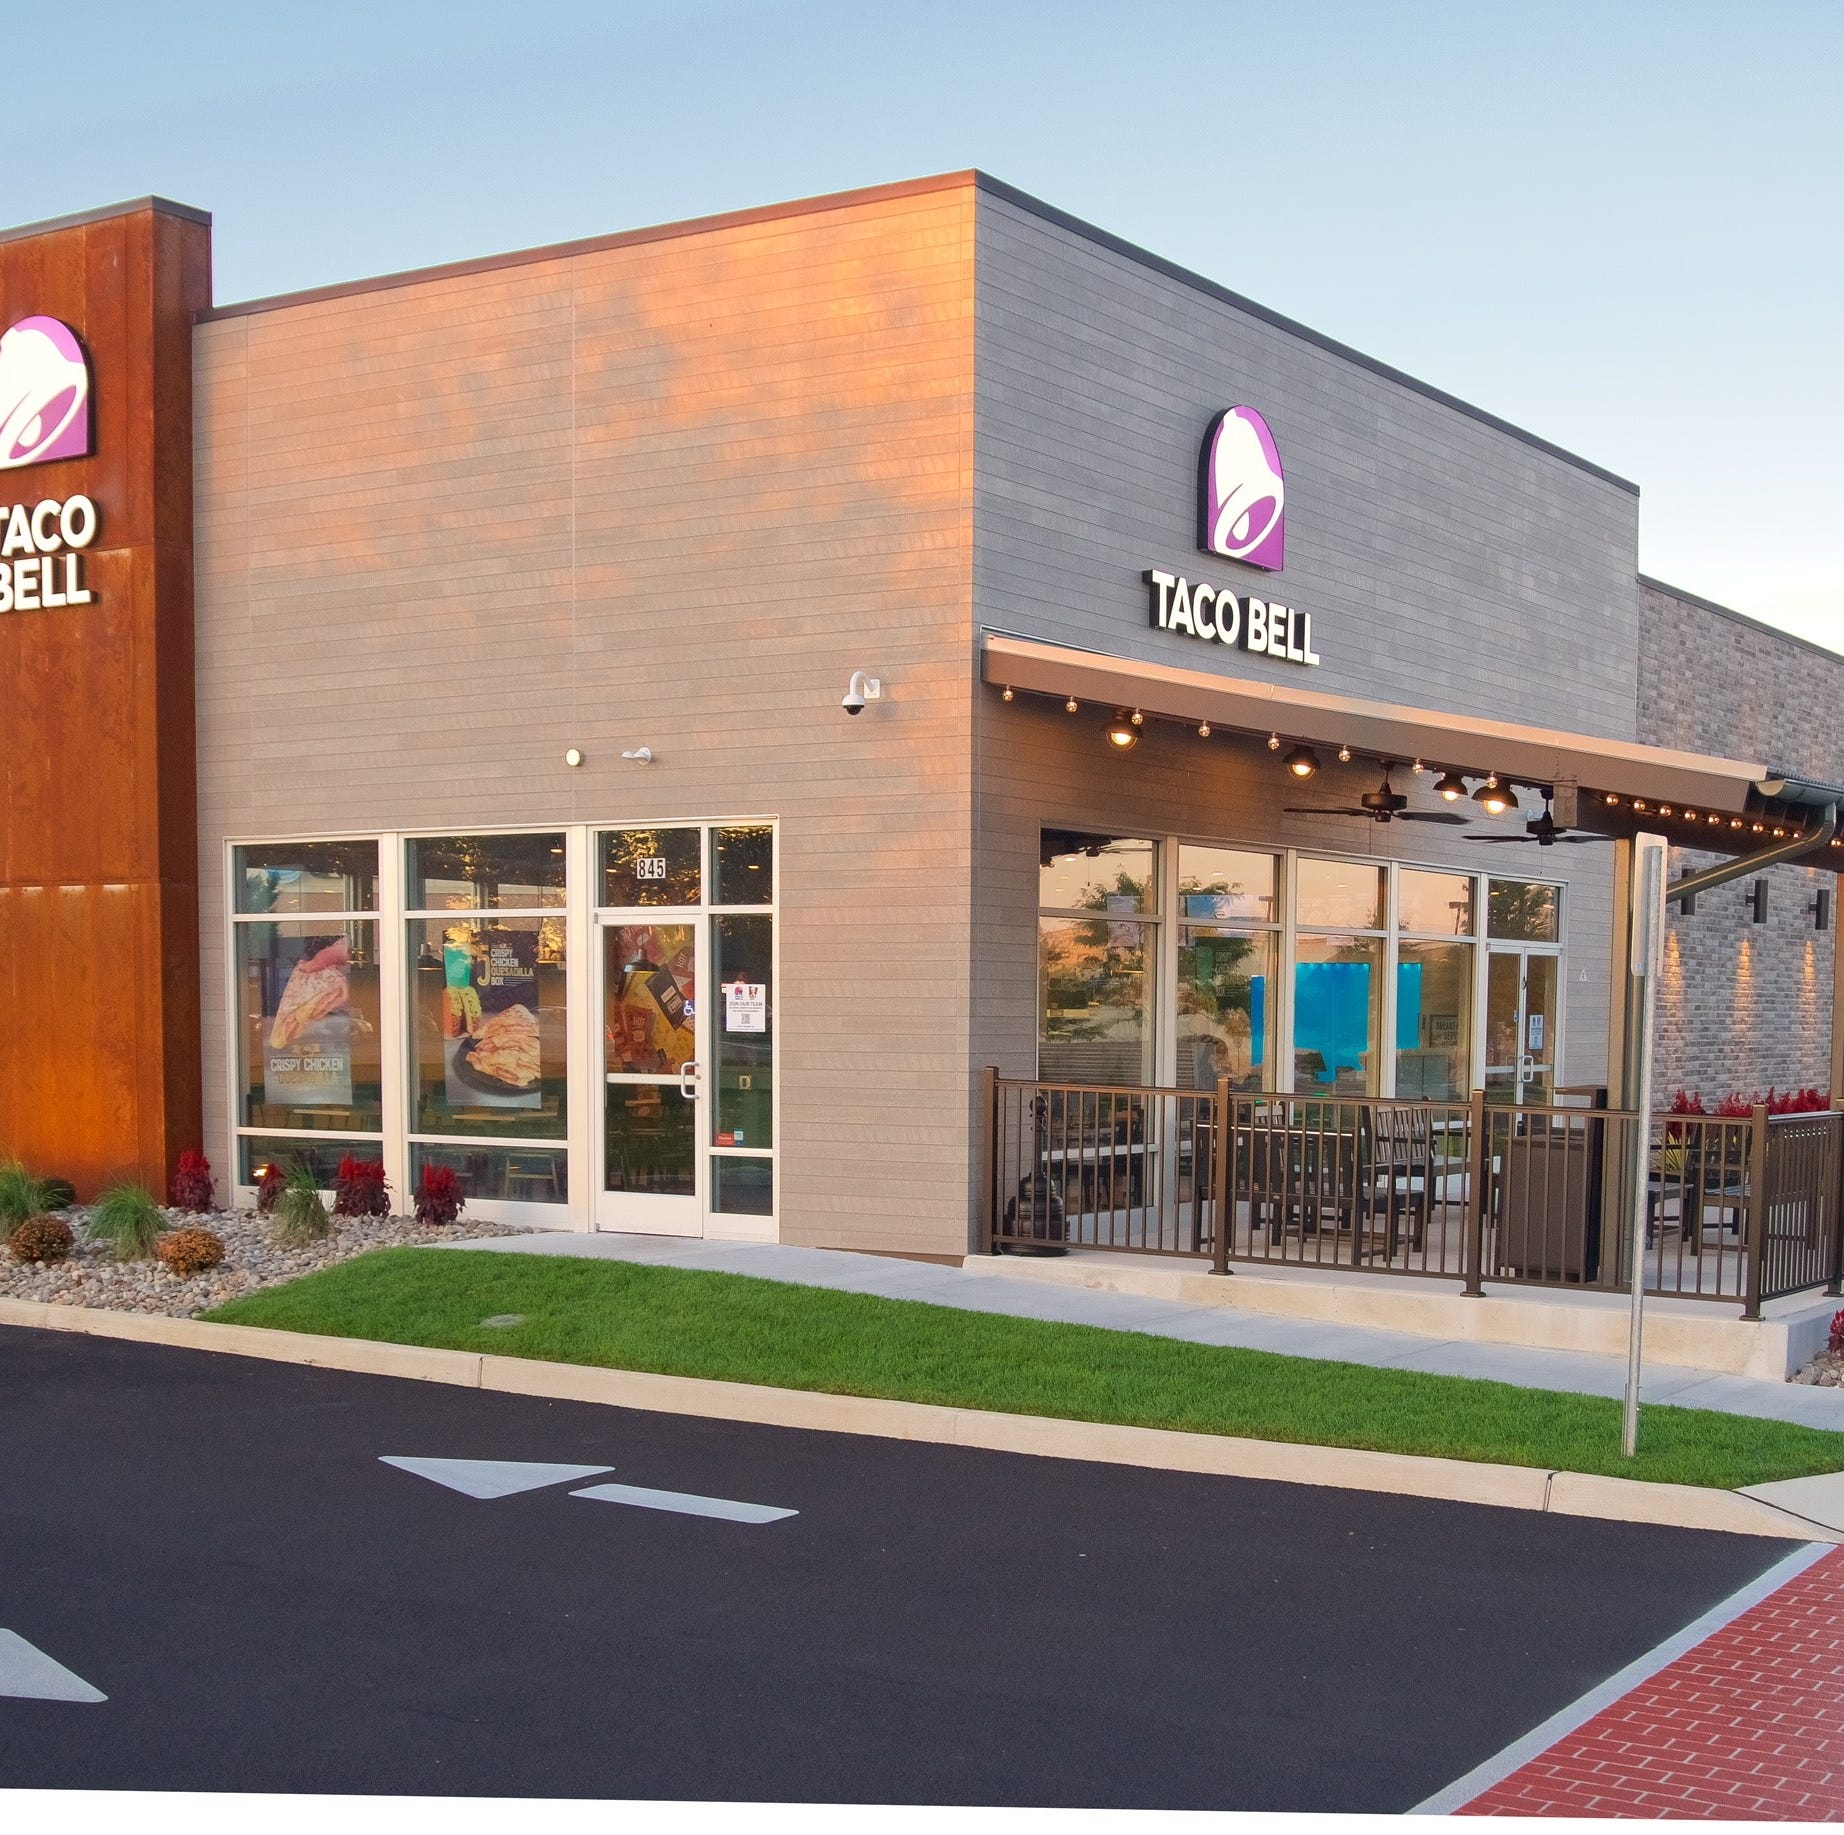 Taco Bell, on S. Queen St., will reopen with this new look, according to Summerwood Corporation.